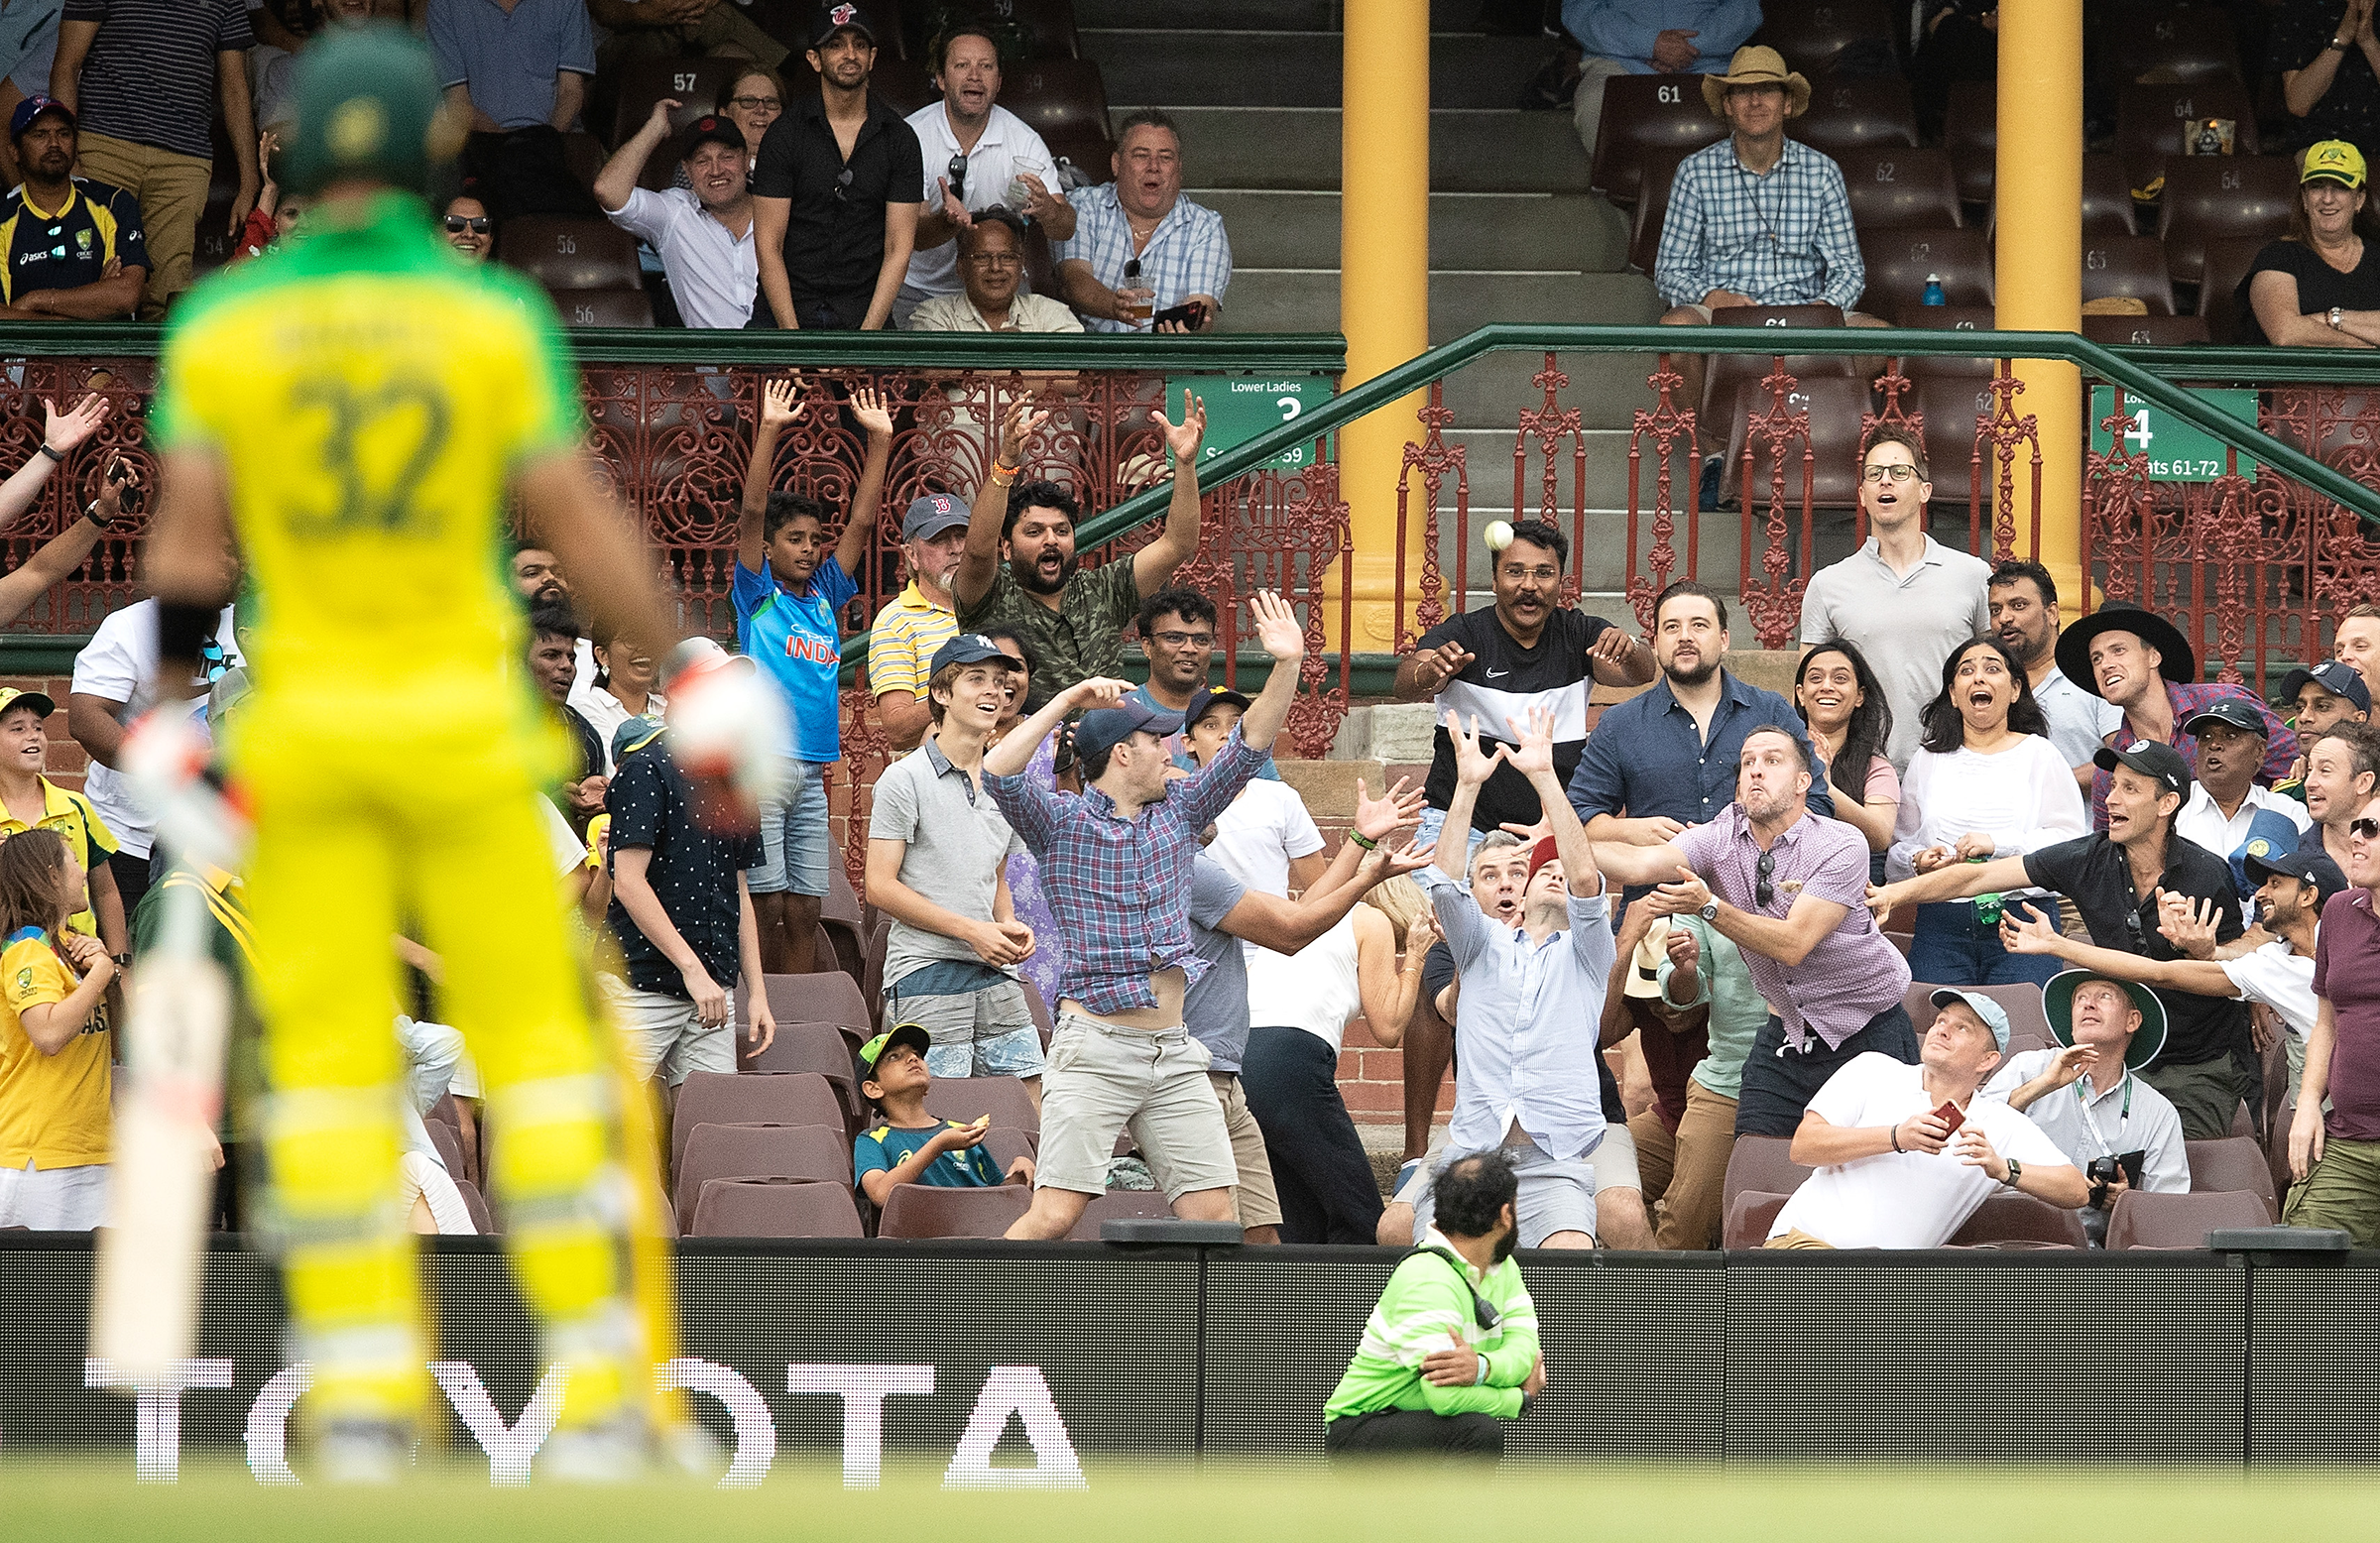 The SCG played host to big crowds less than a month ago // Getty